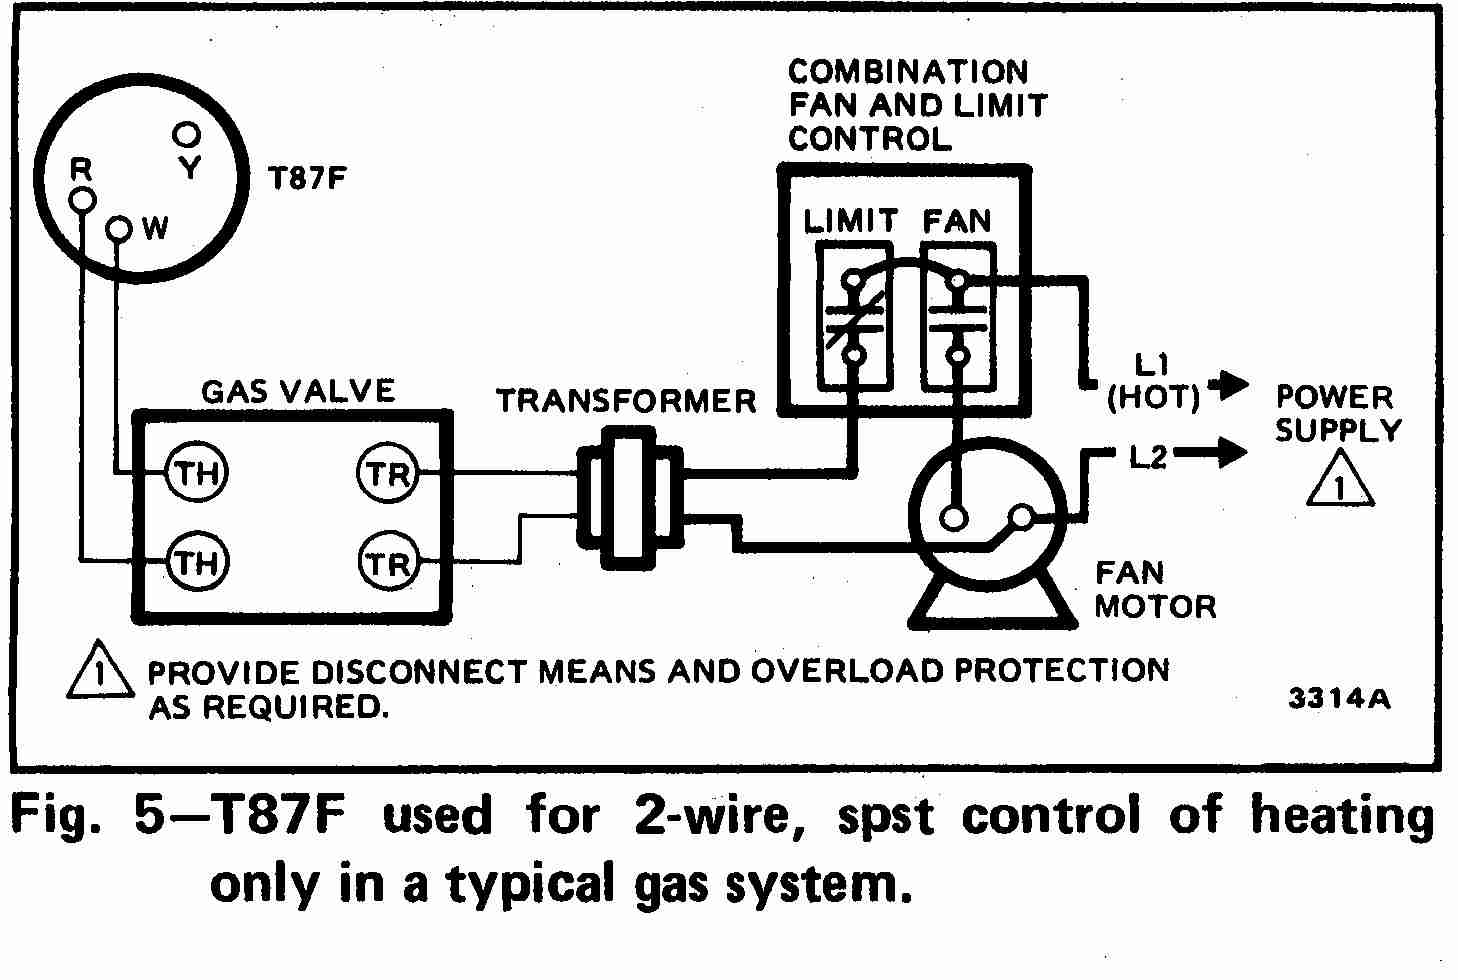 TT_T87F_0002_2Wg_DJF guide to wiring connections for room thermostats honeywell line voltage thermostat wiring diagram at bakdesigns.co